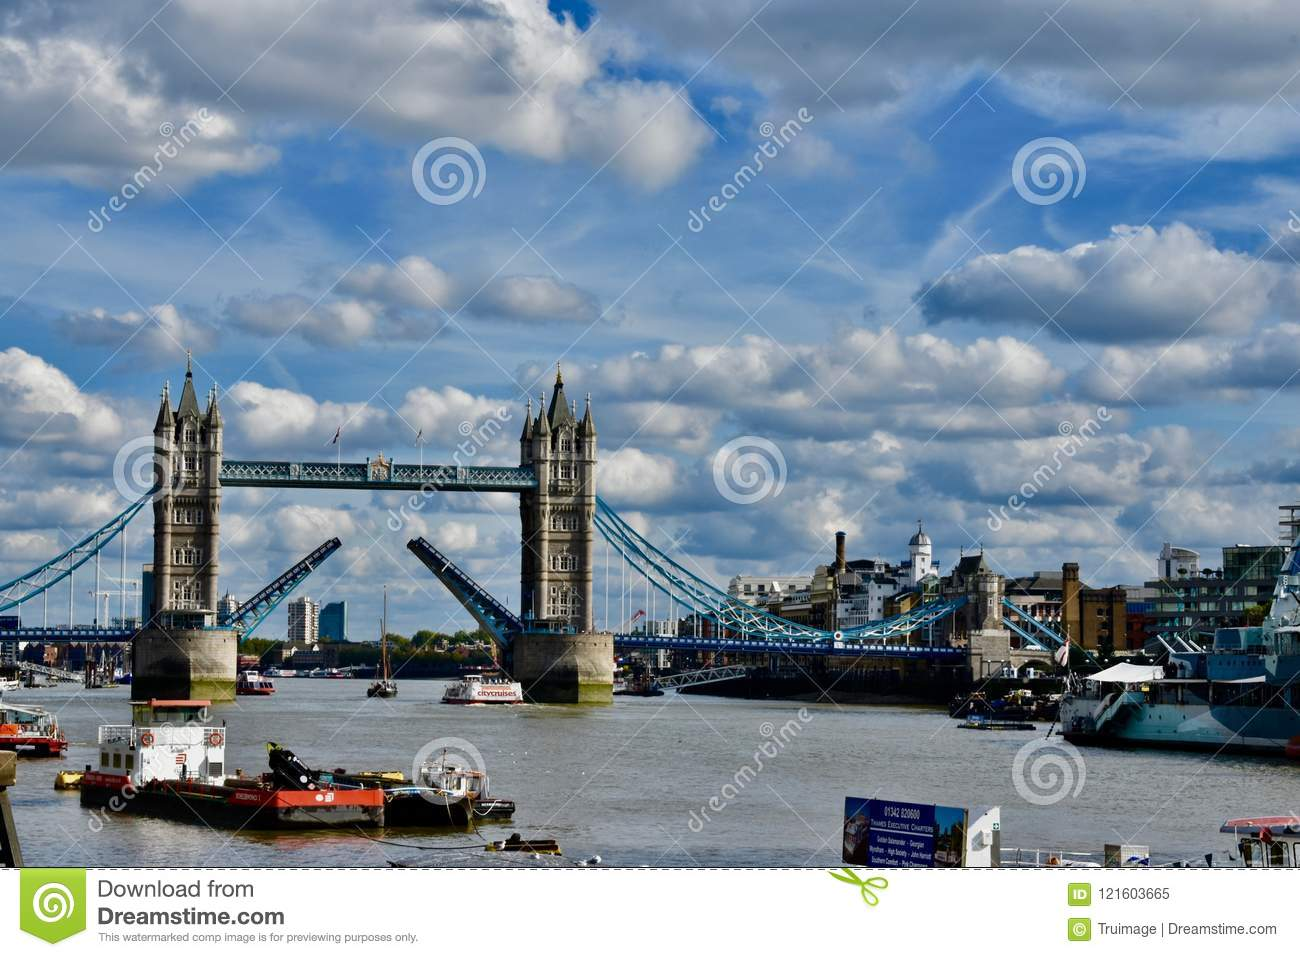 The river Thames and London Bridge